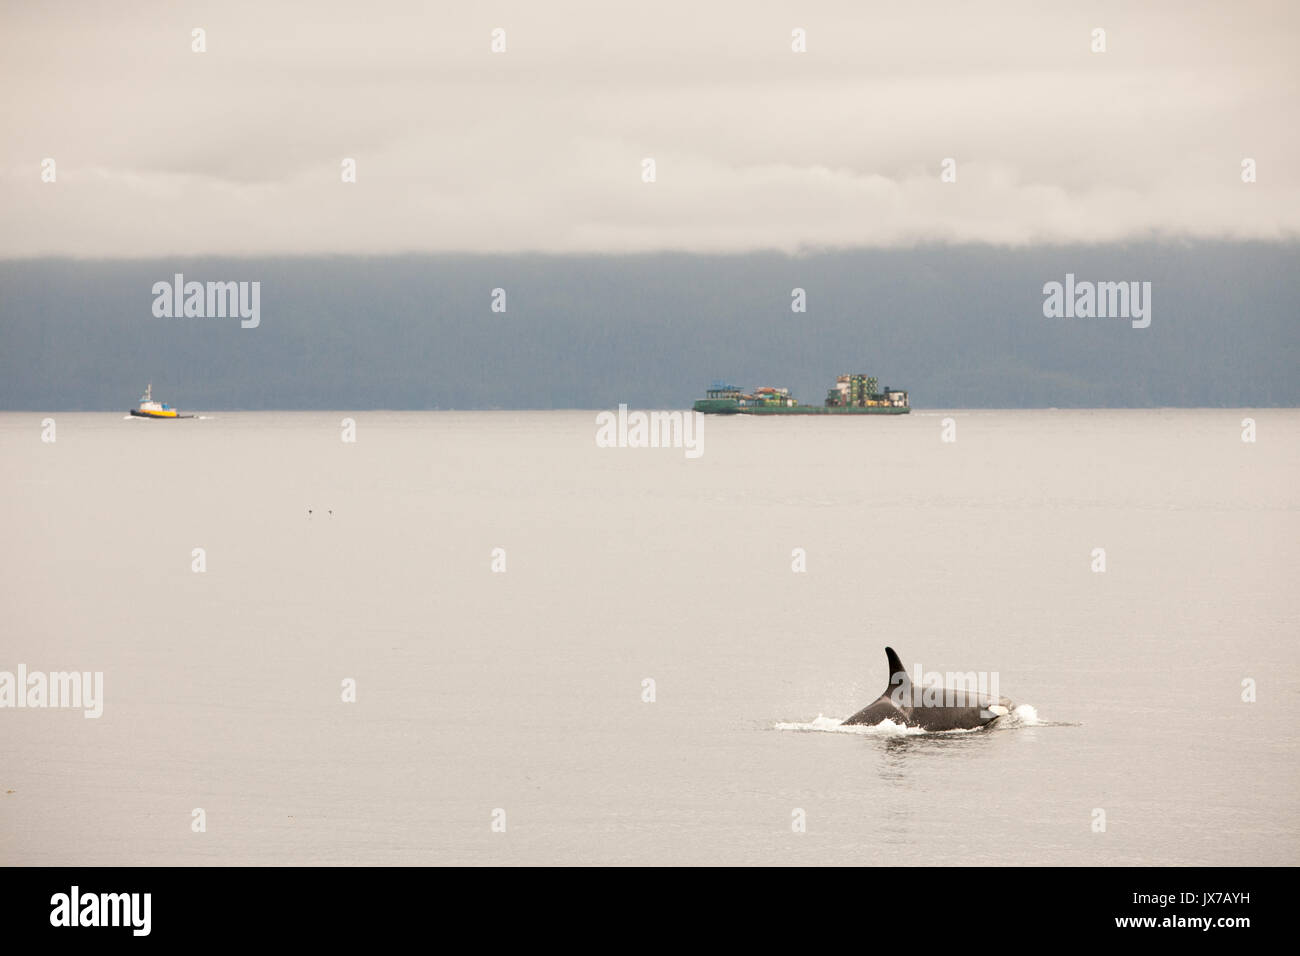 An orca whale and its dorsal fin breach the water. - Stock Image